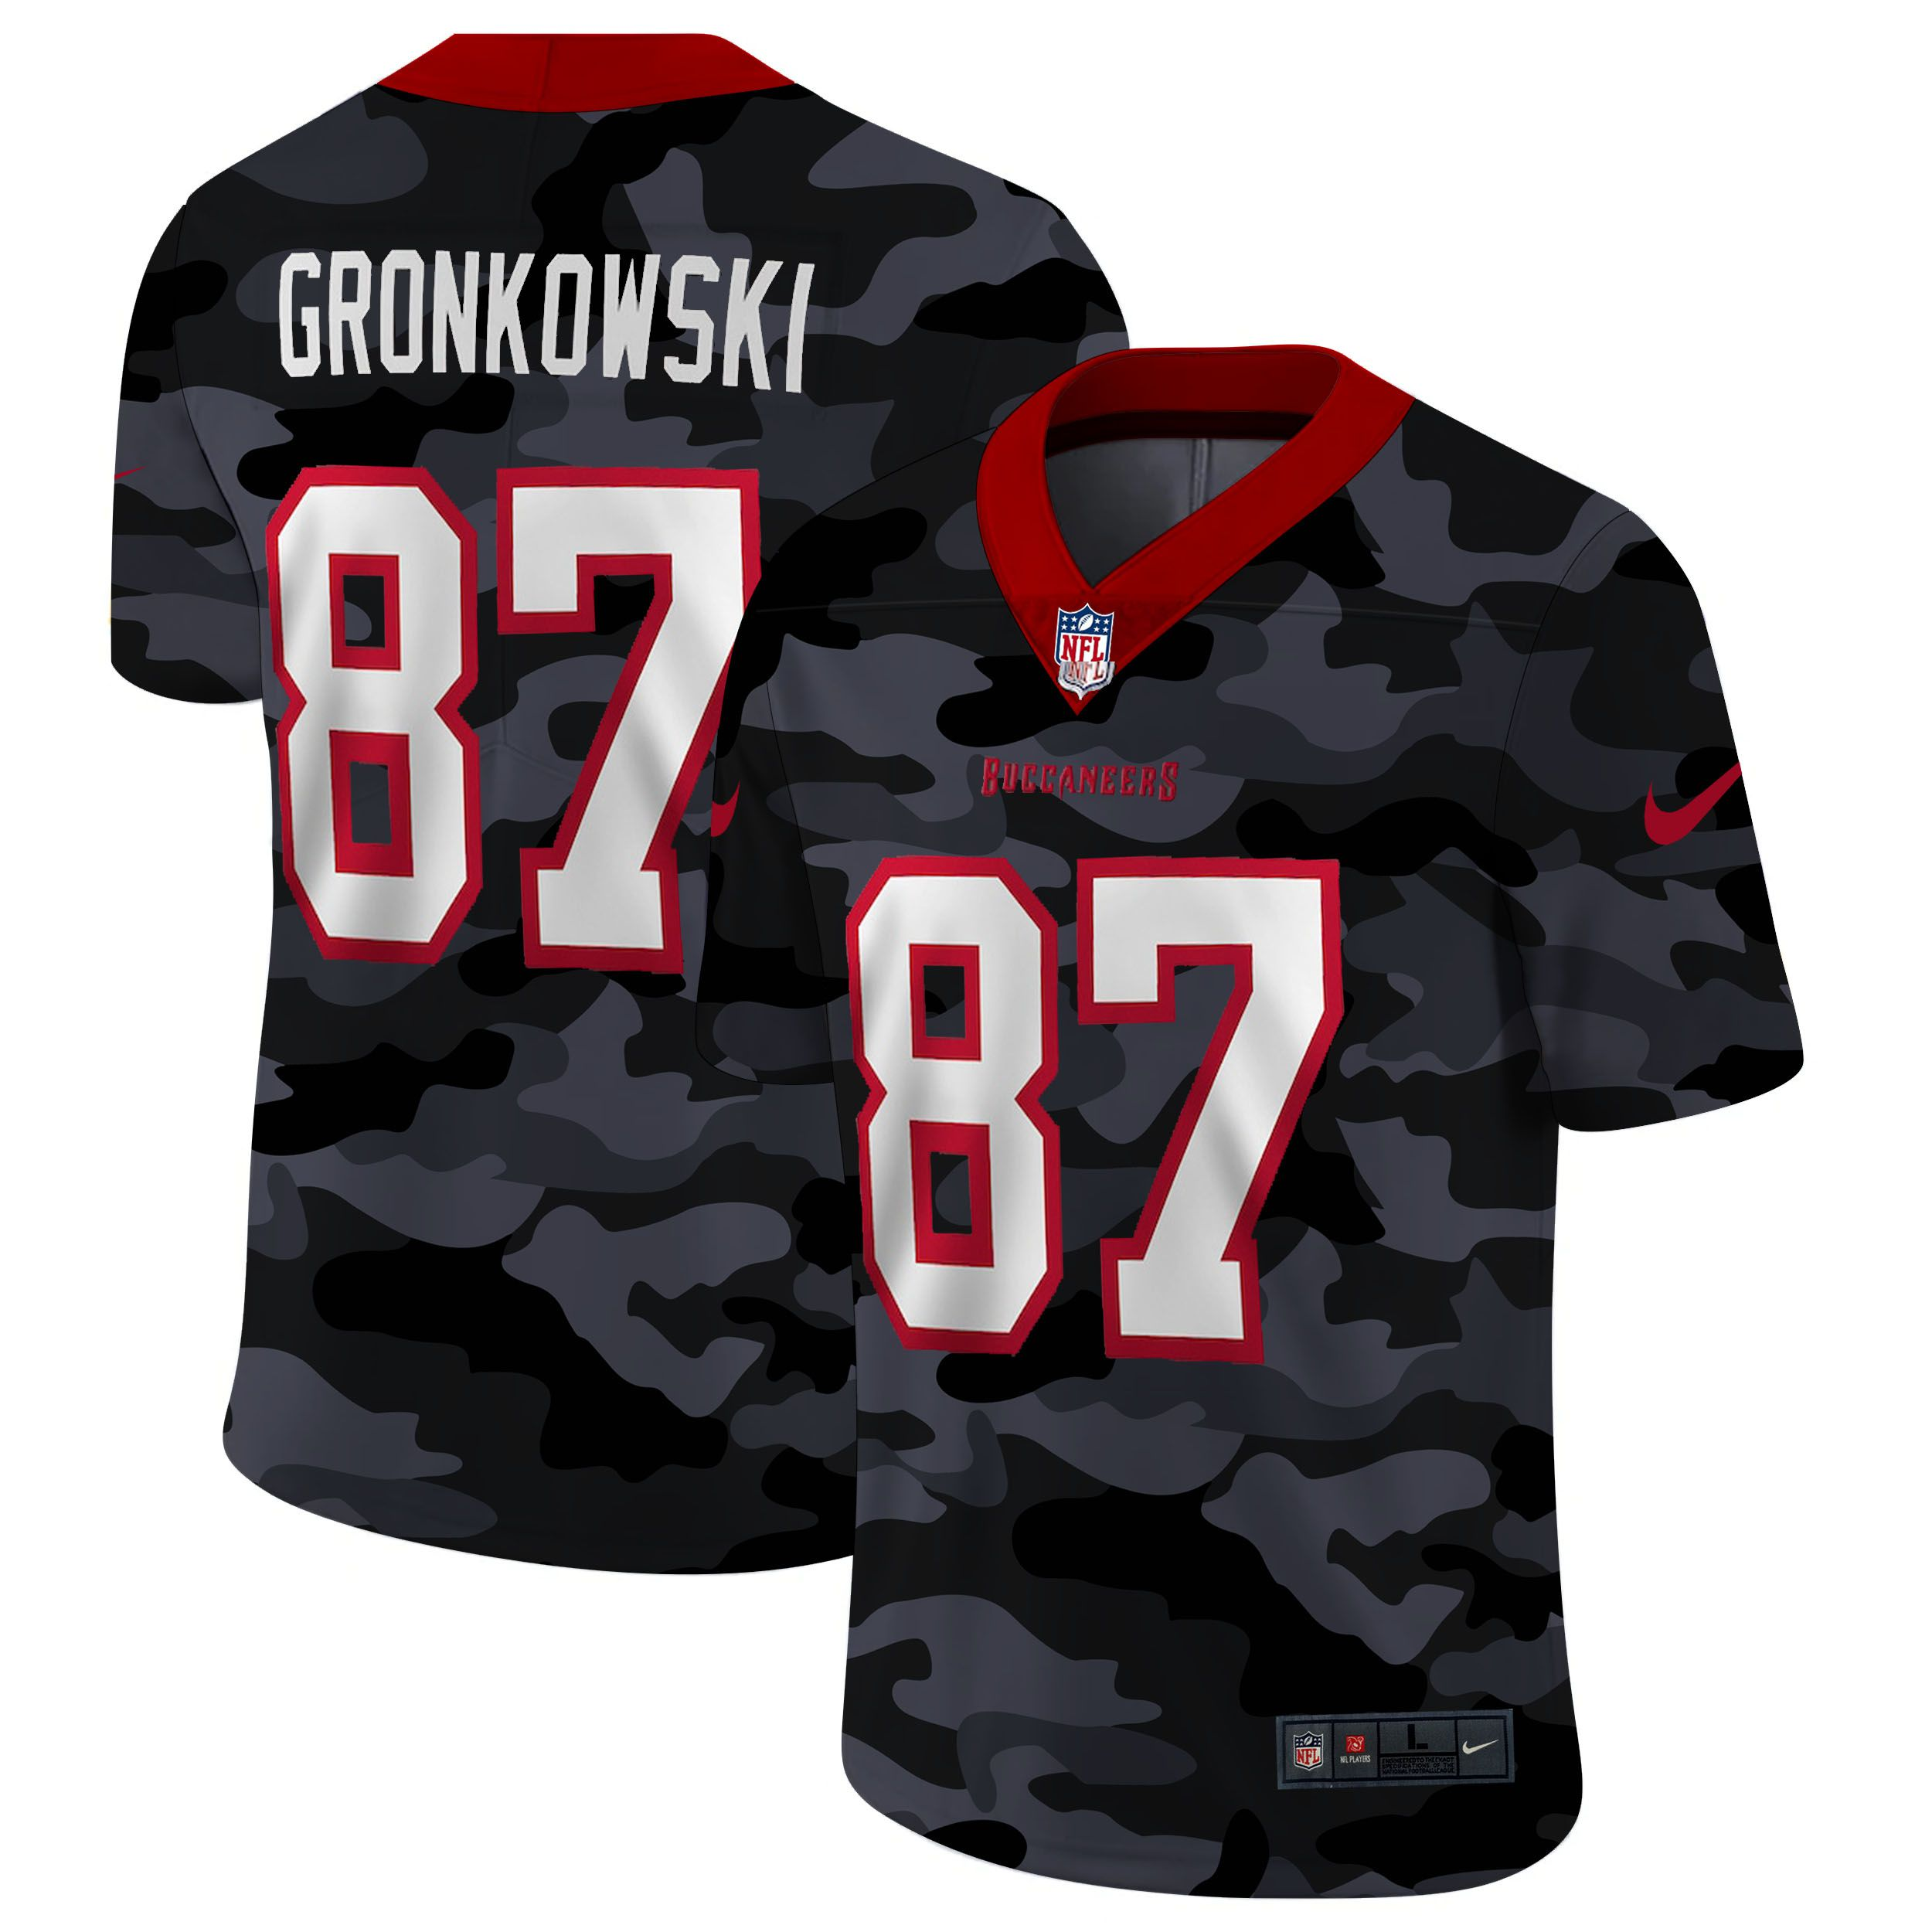 Wholesale Men Tampa Bay Buccaneers 87 Gronkowski 2020 Nike Camo Salute to Service Limited NFL Jerseys